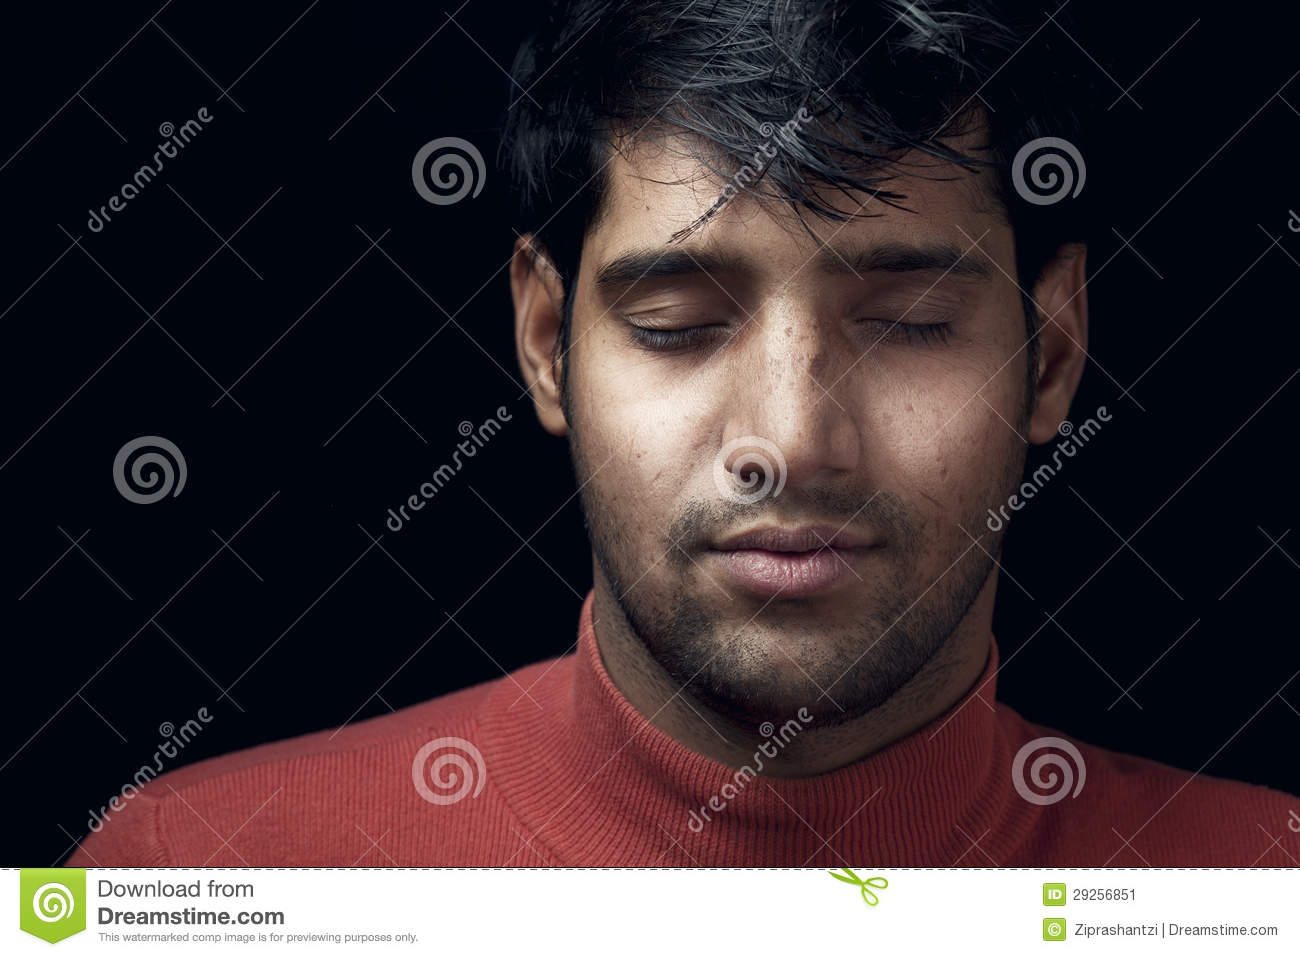 Stock Image: Portrait of young Indian man closed eyes over dark